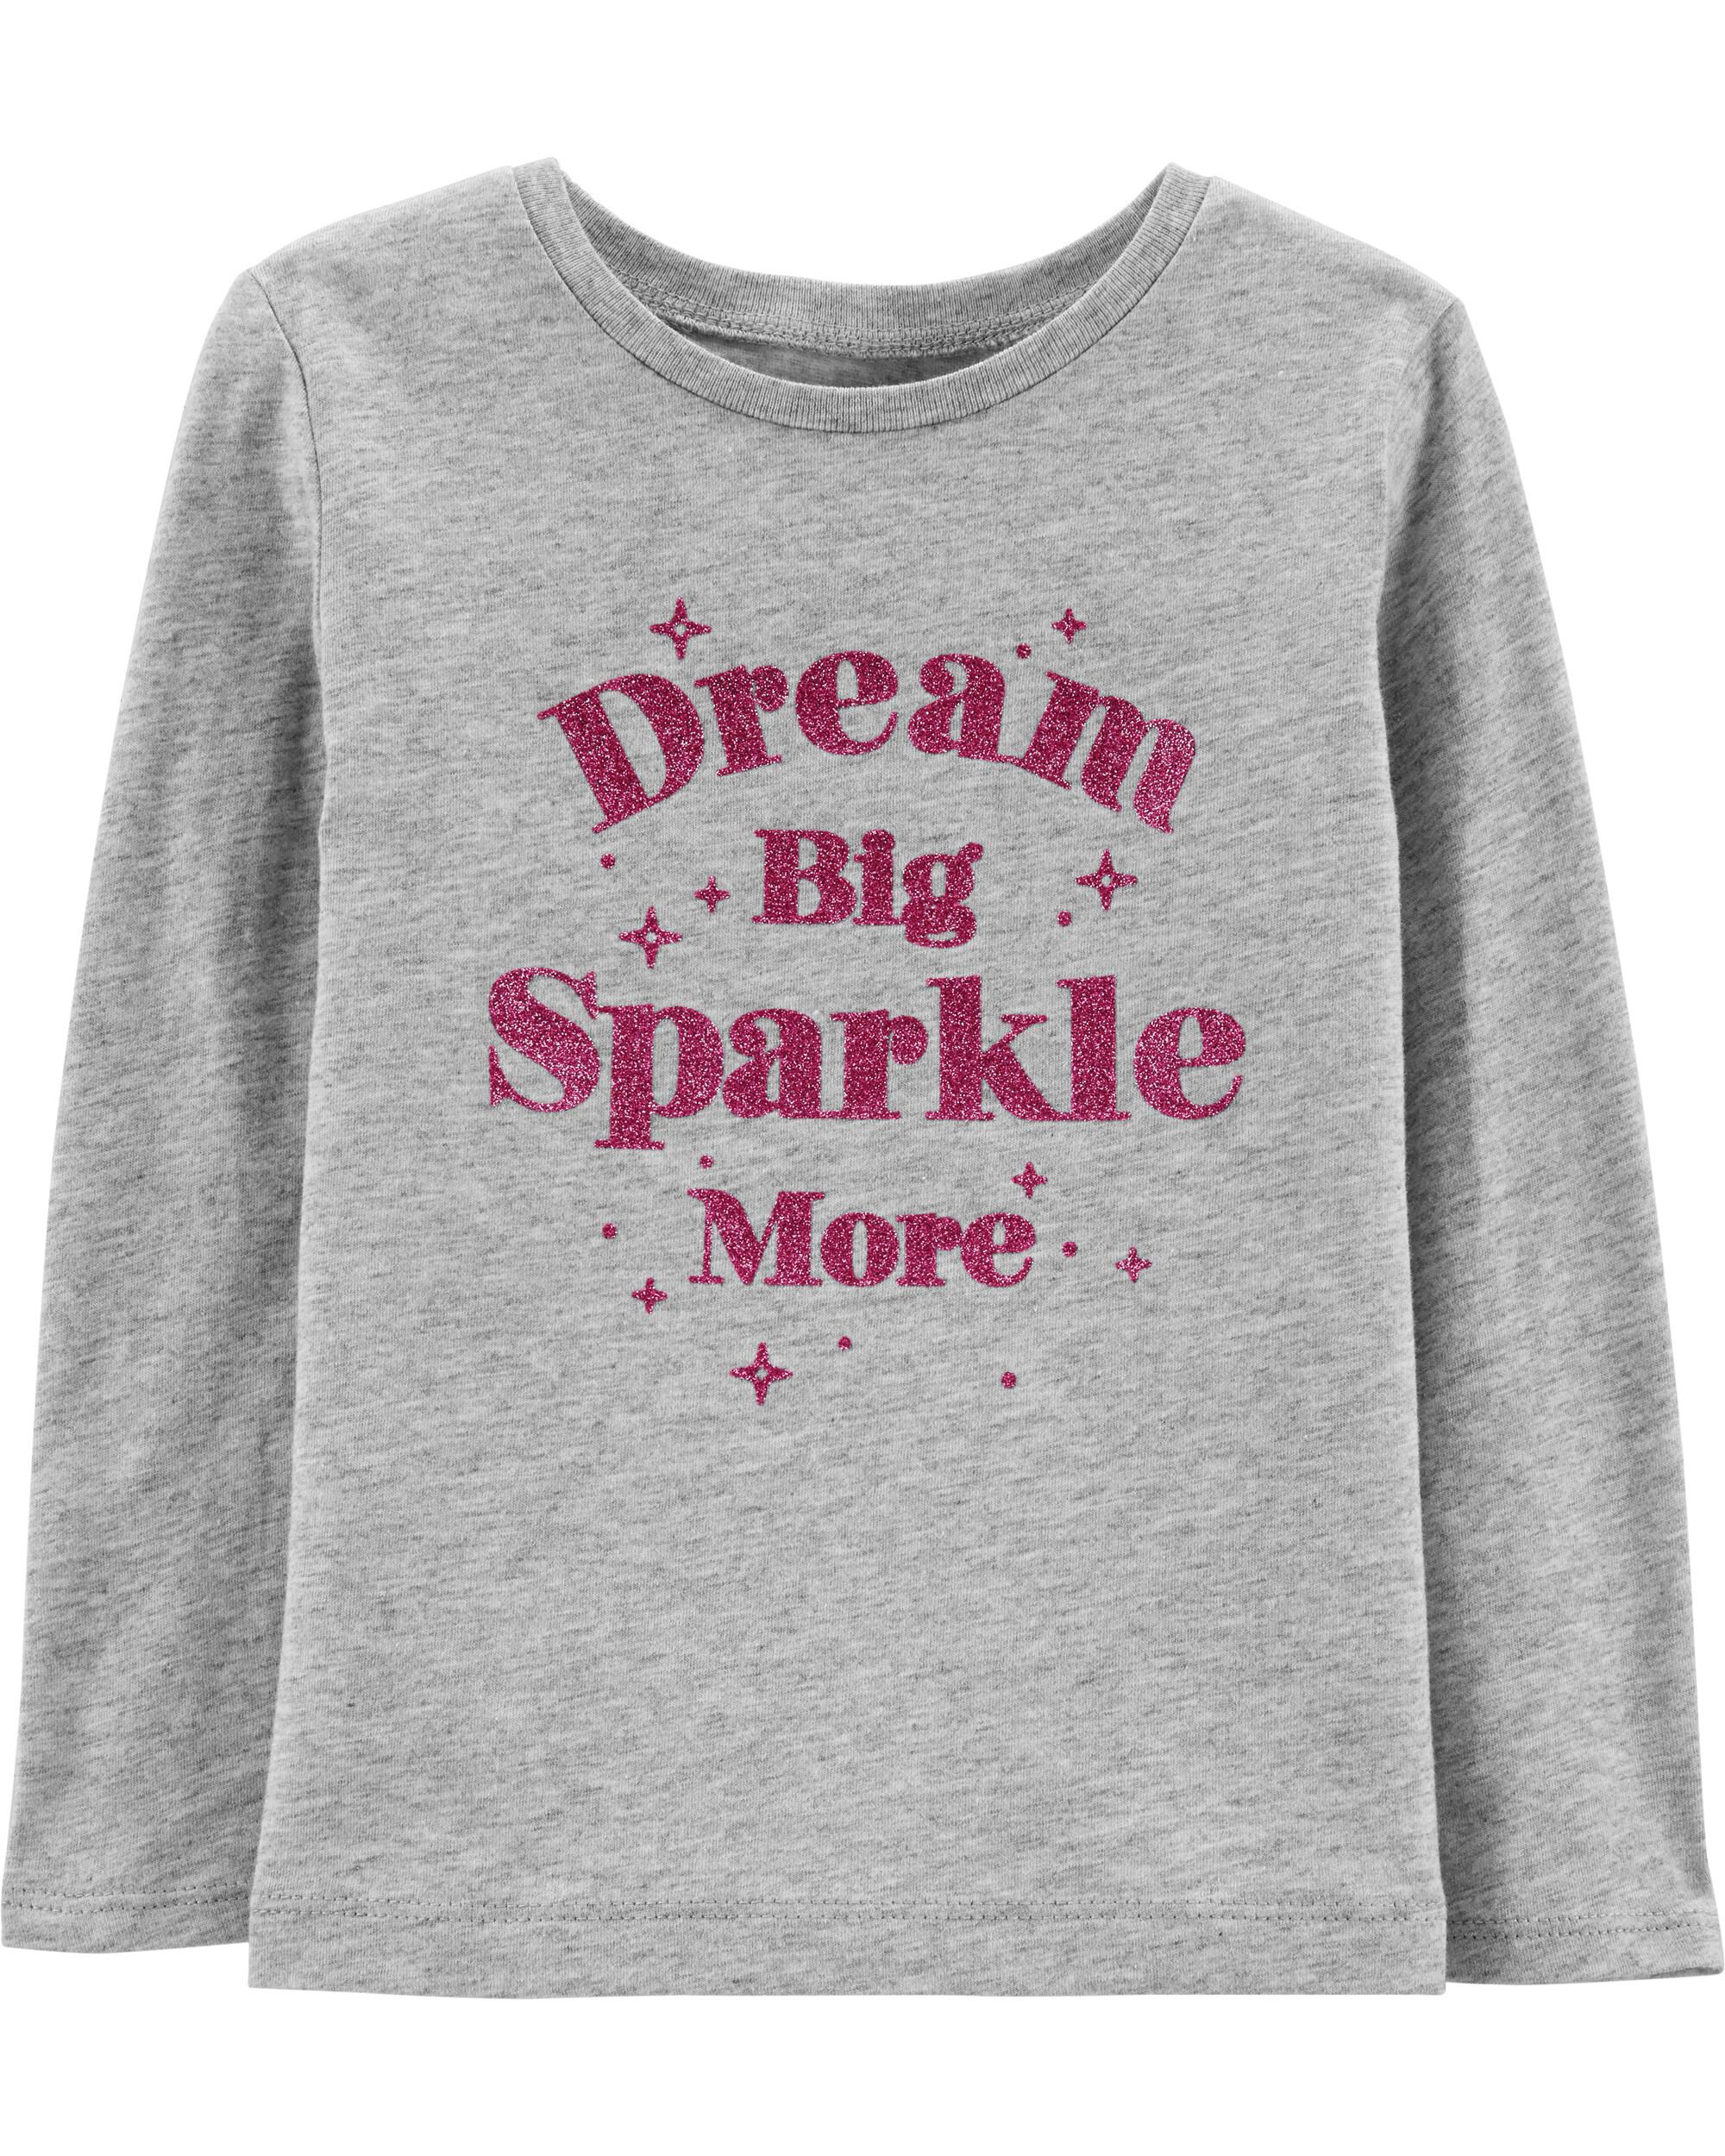 *Clearance*  Dream Big Sparkle More Tee